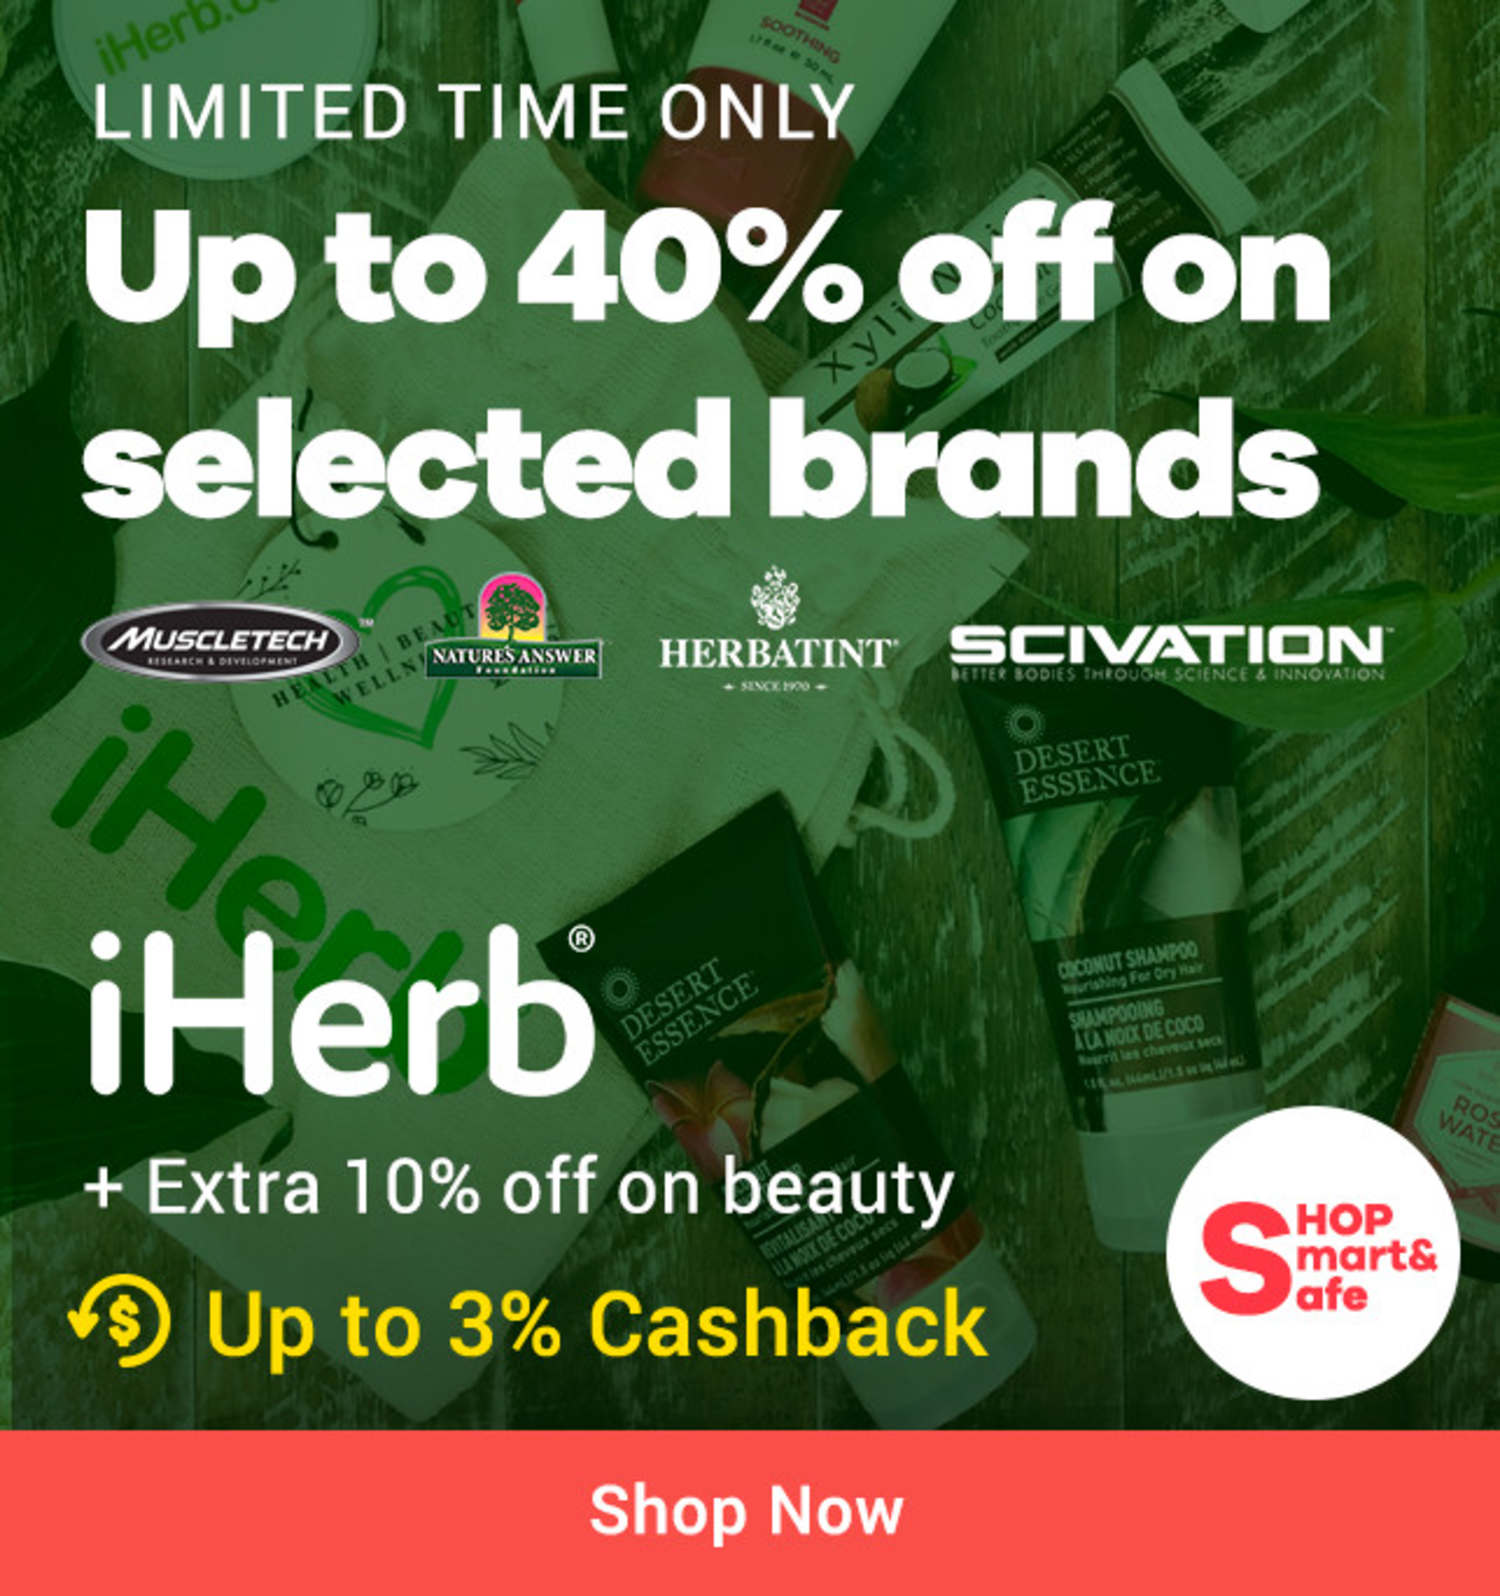 iHerb: Up to 40% off on selected brands